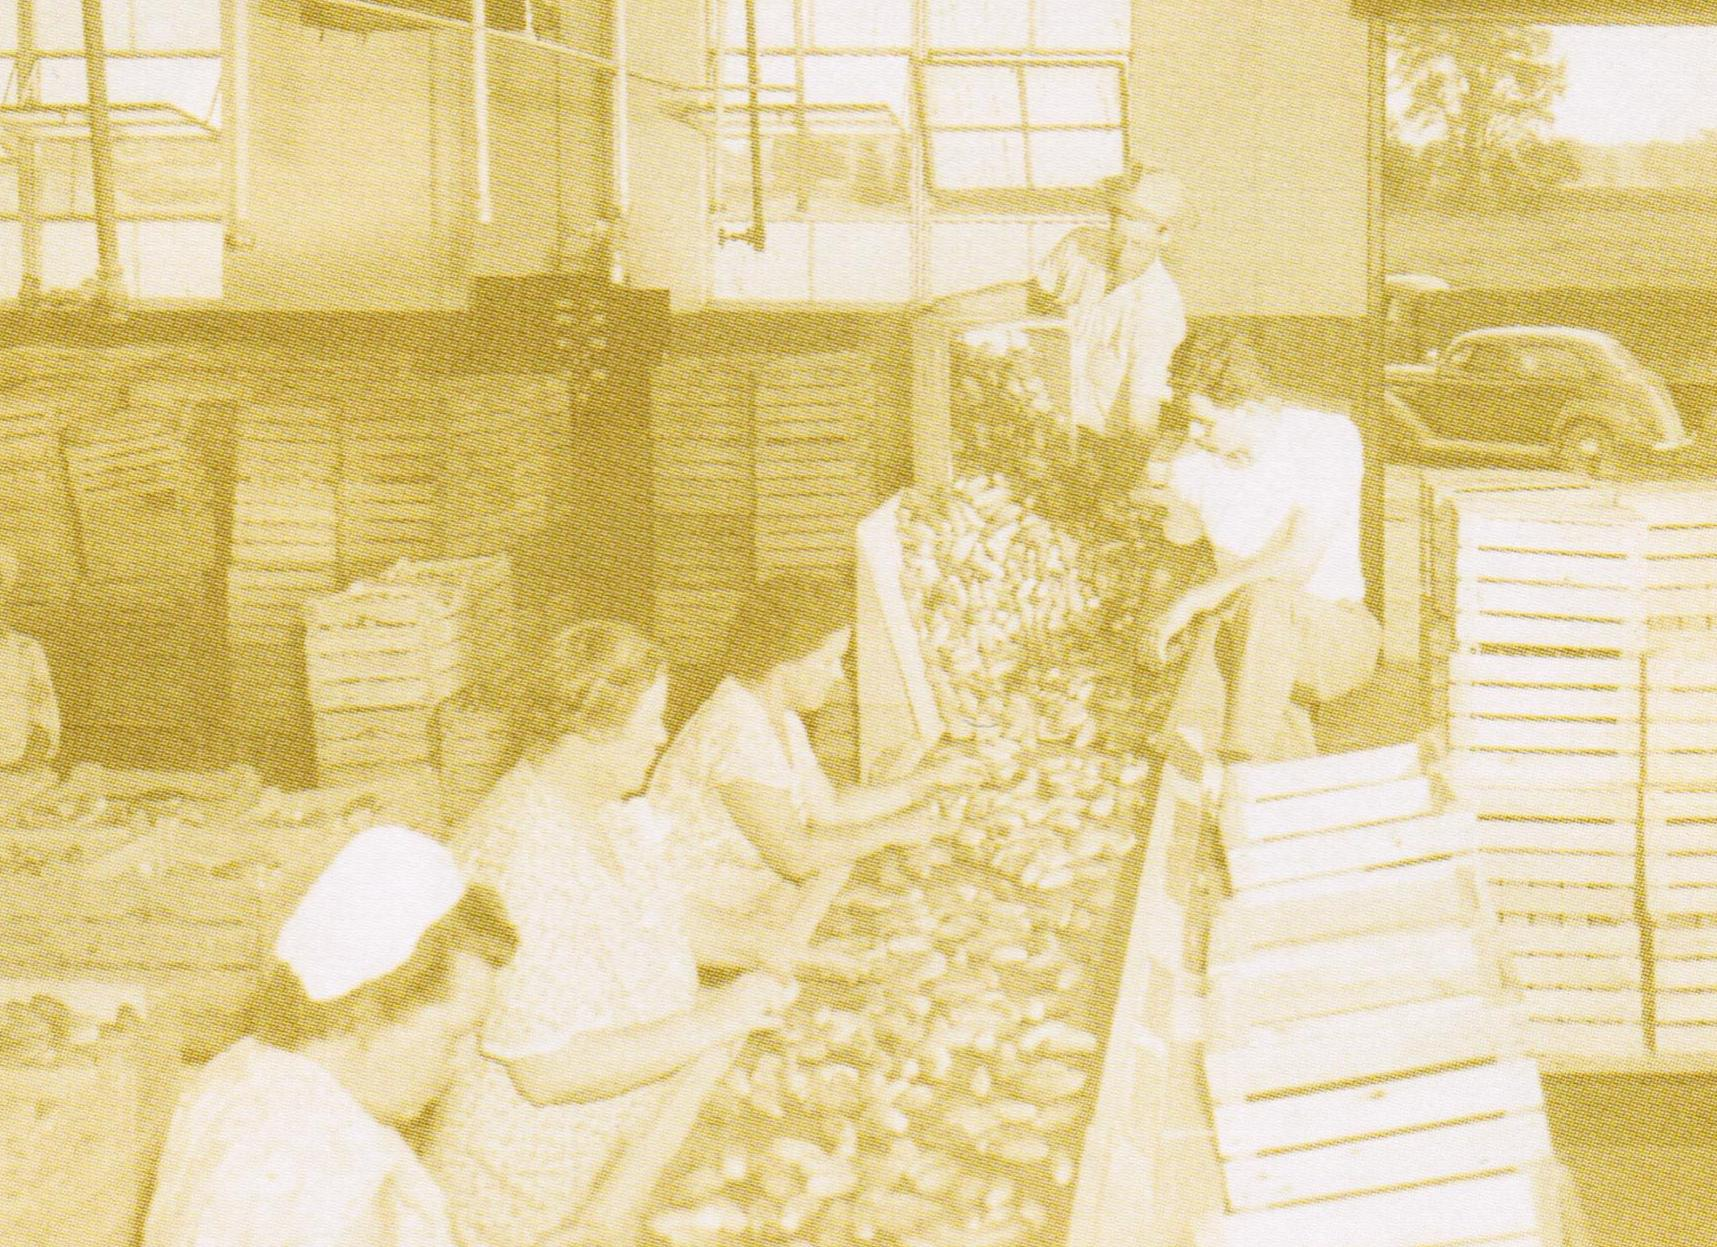 Making Pickles in 1937